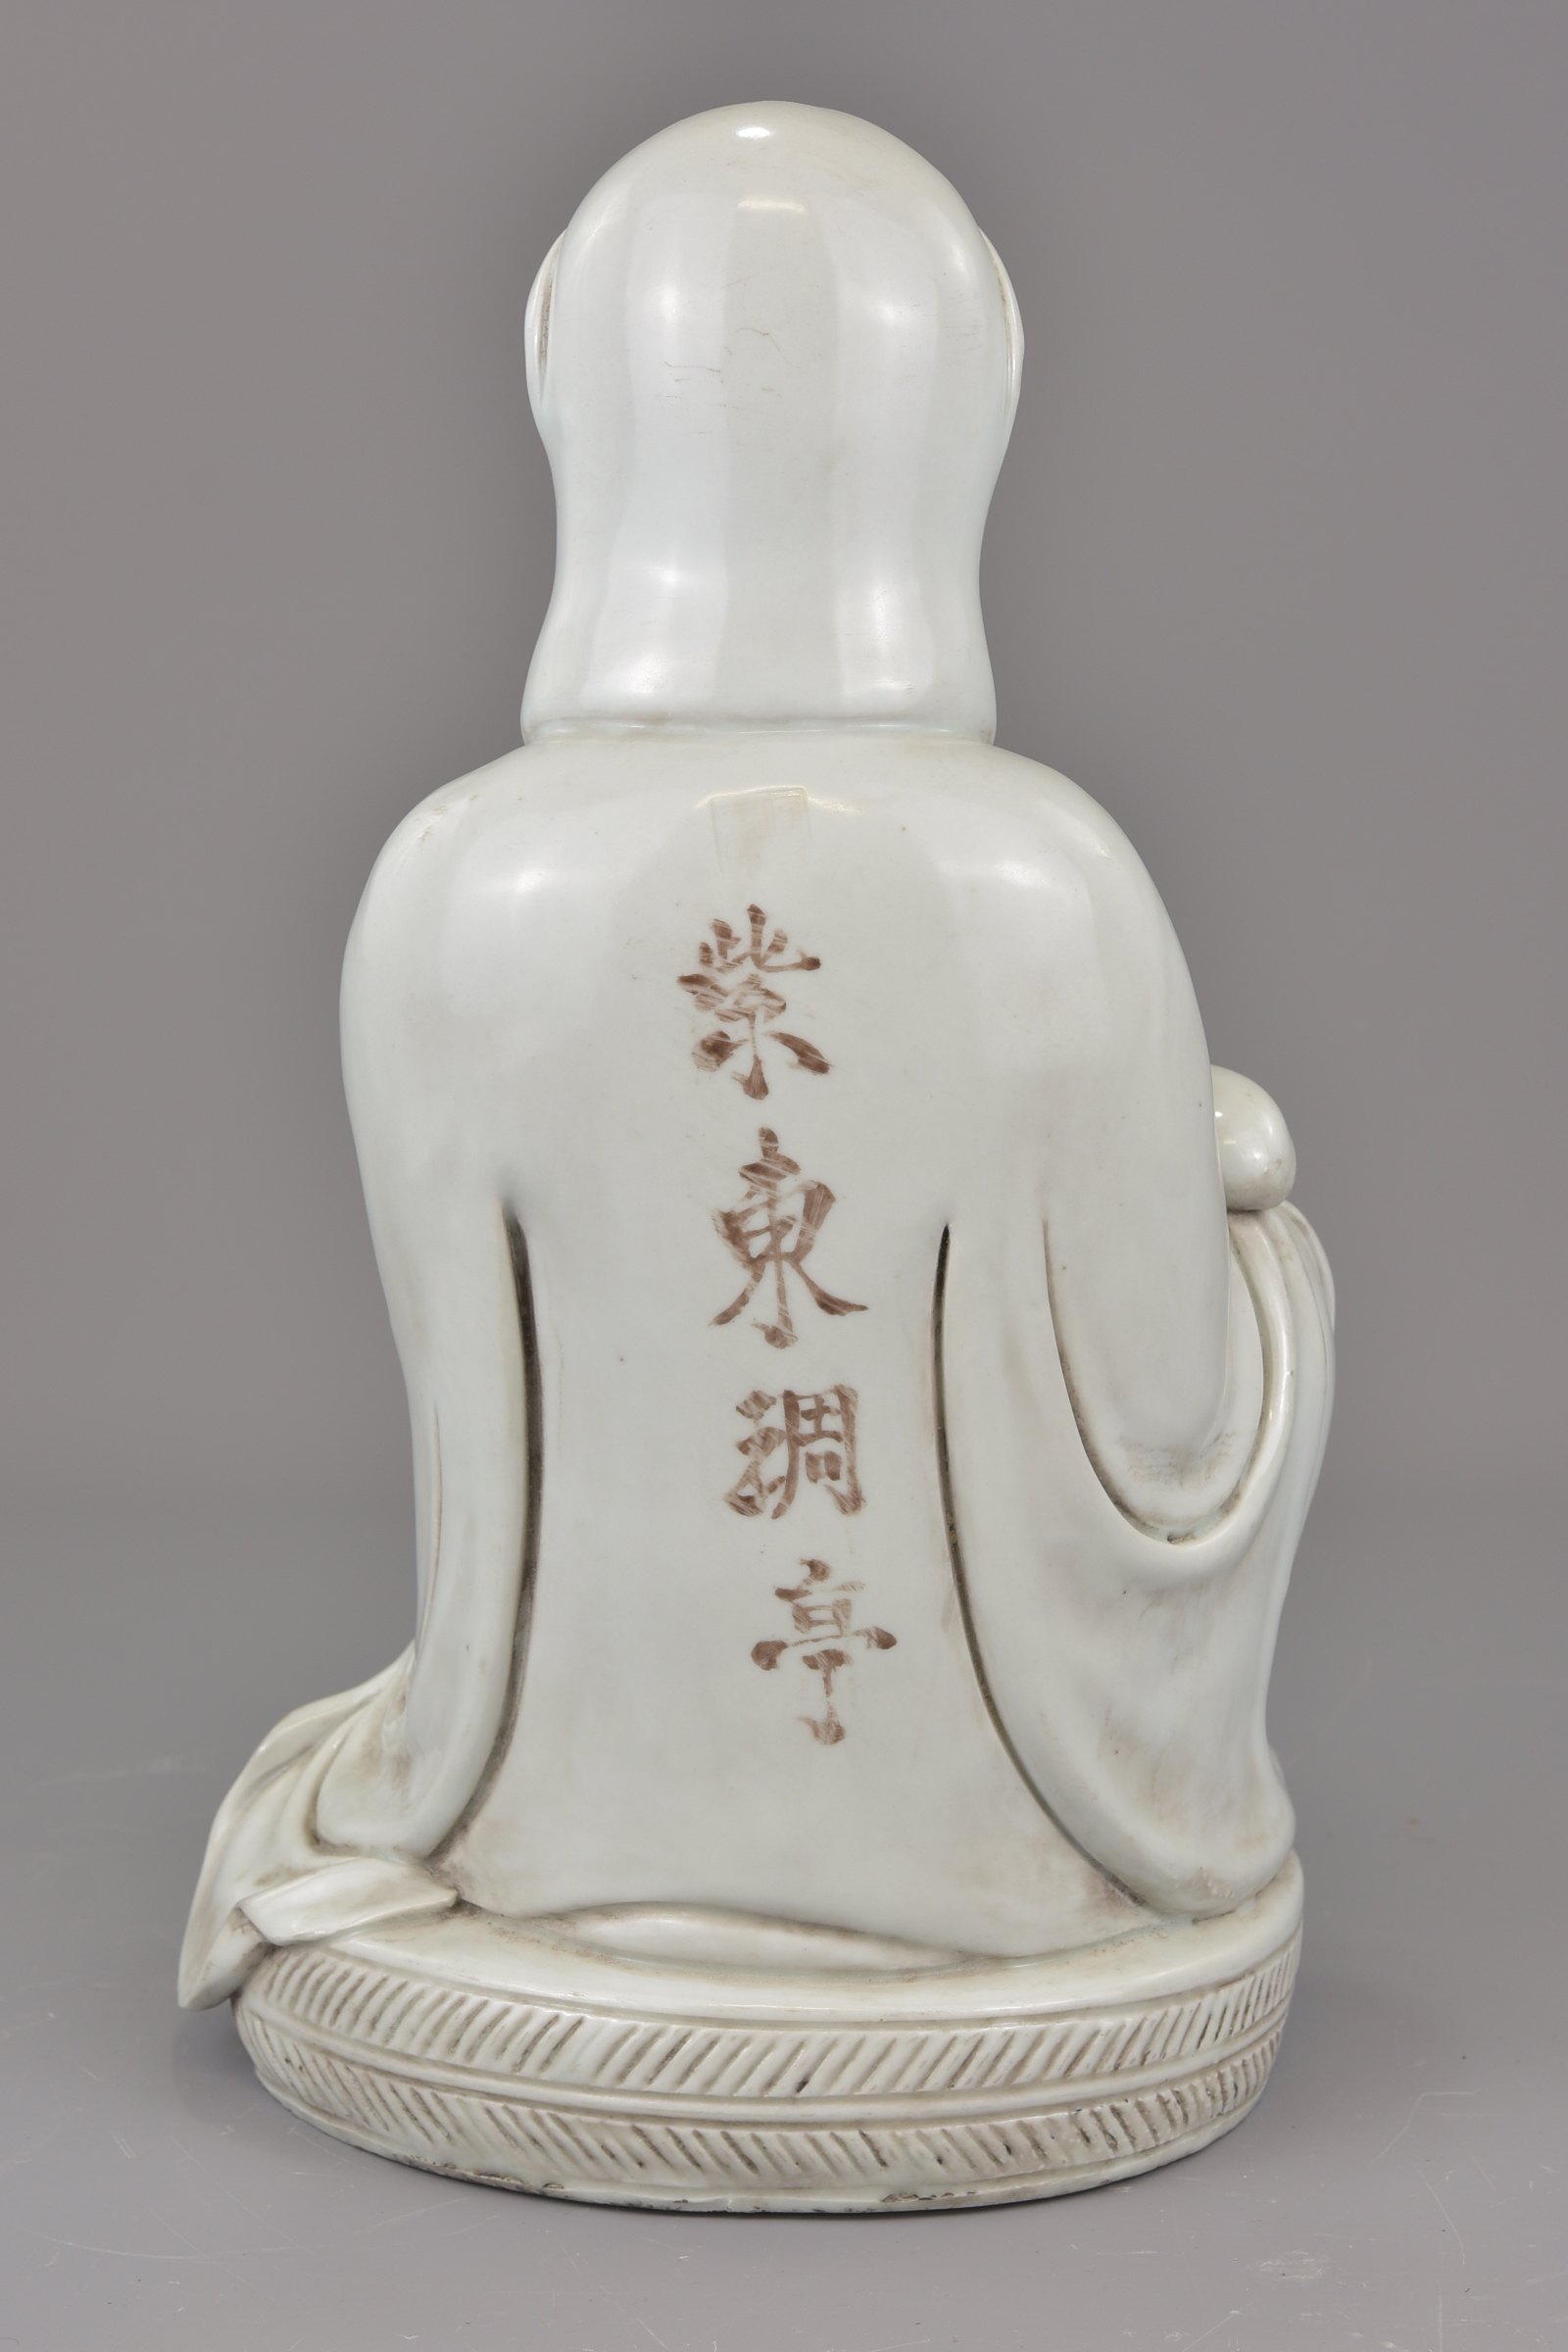 Lot 12 - A Chinese 19th century Blanc de Chine porcelain figure of a Guanyin with four character temple name